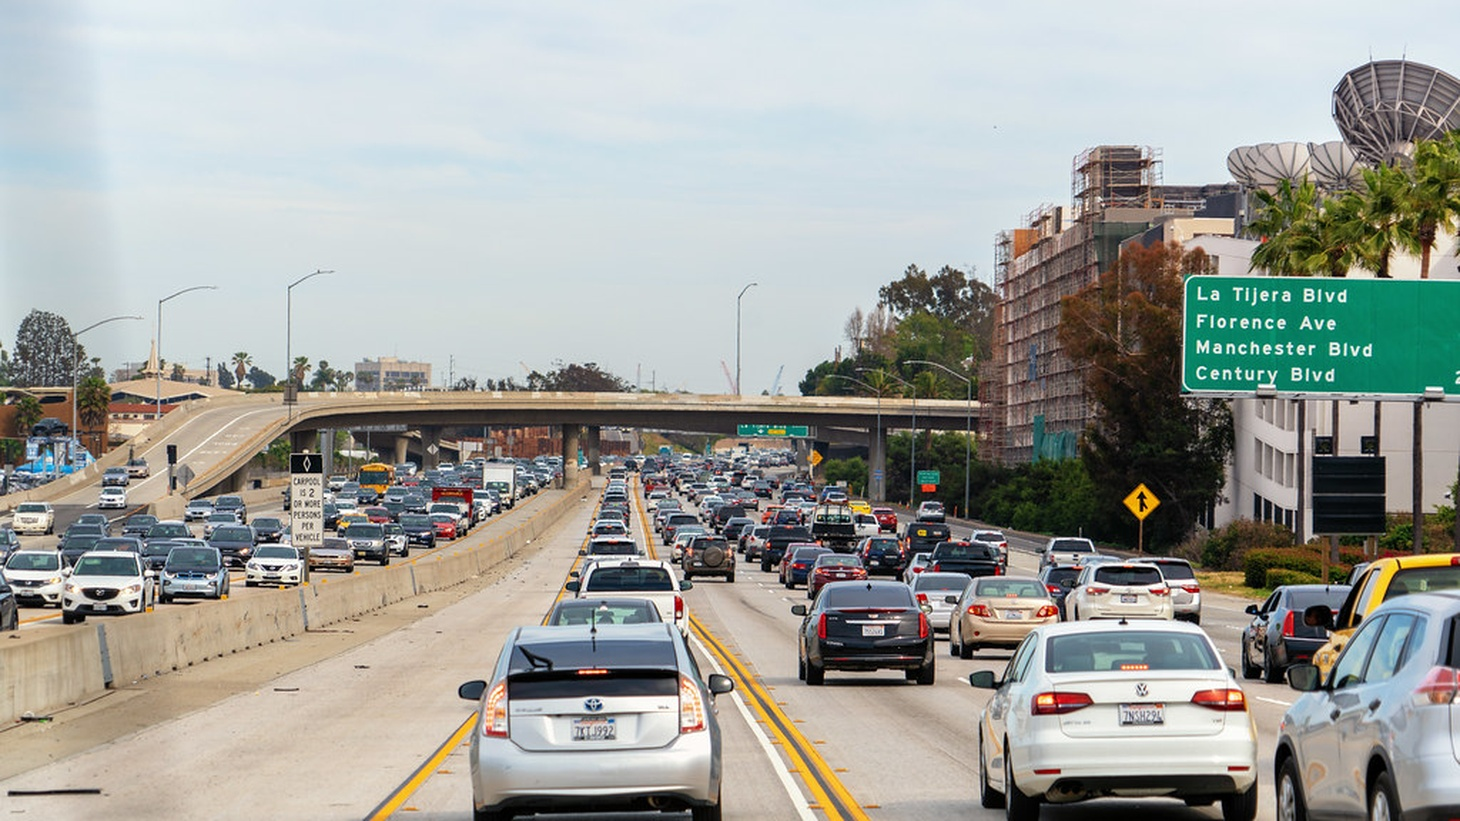 Los Angeles traffic on the 405 freeway